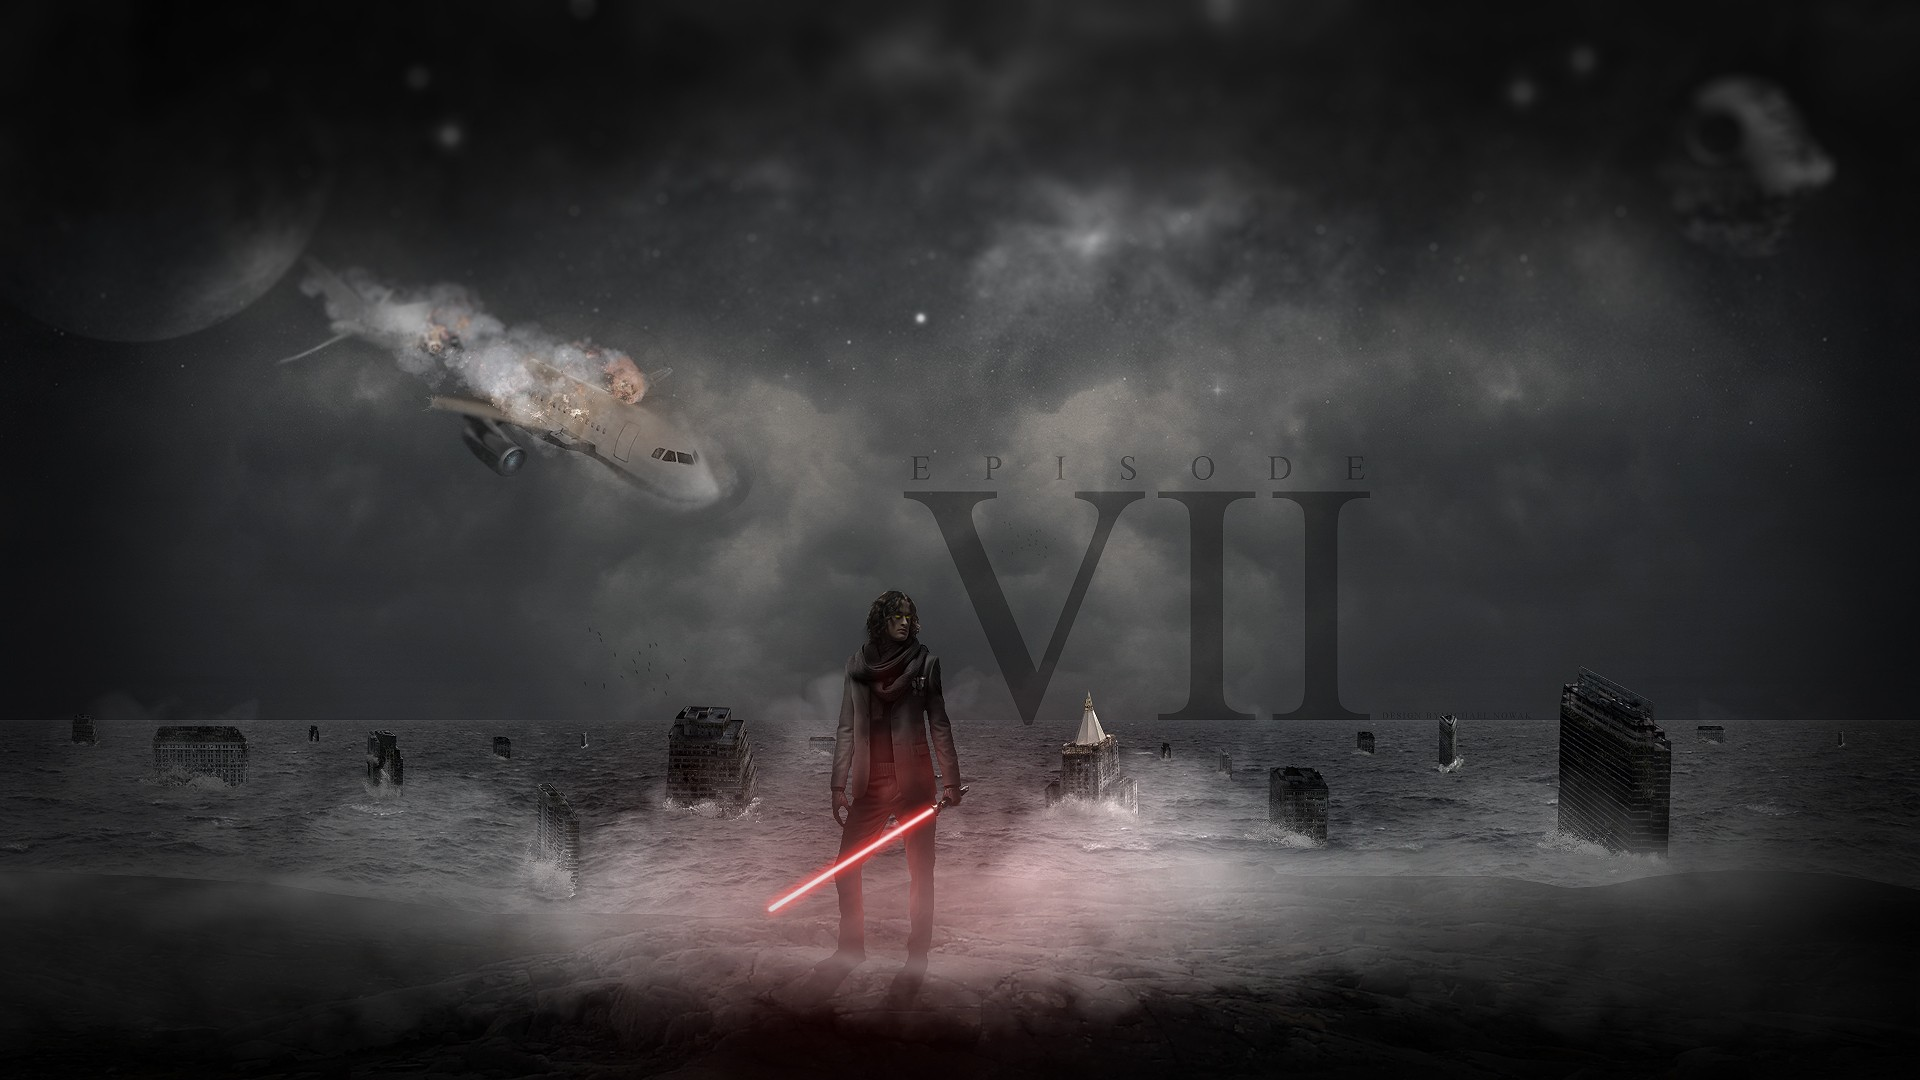 Star wars the force awakens wallpaper 1920x1080 - Star wars cool backgrounds ...